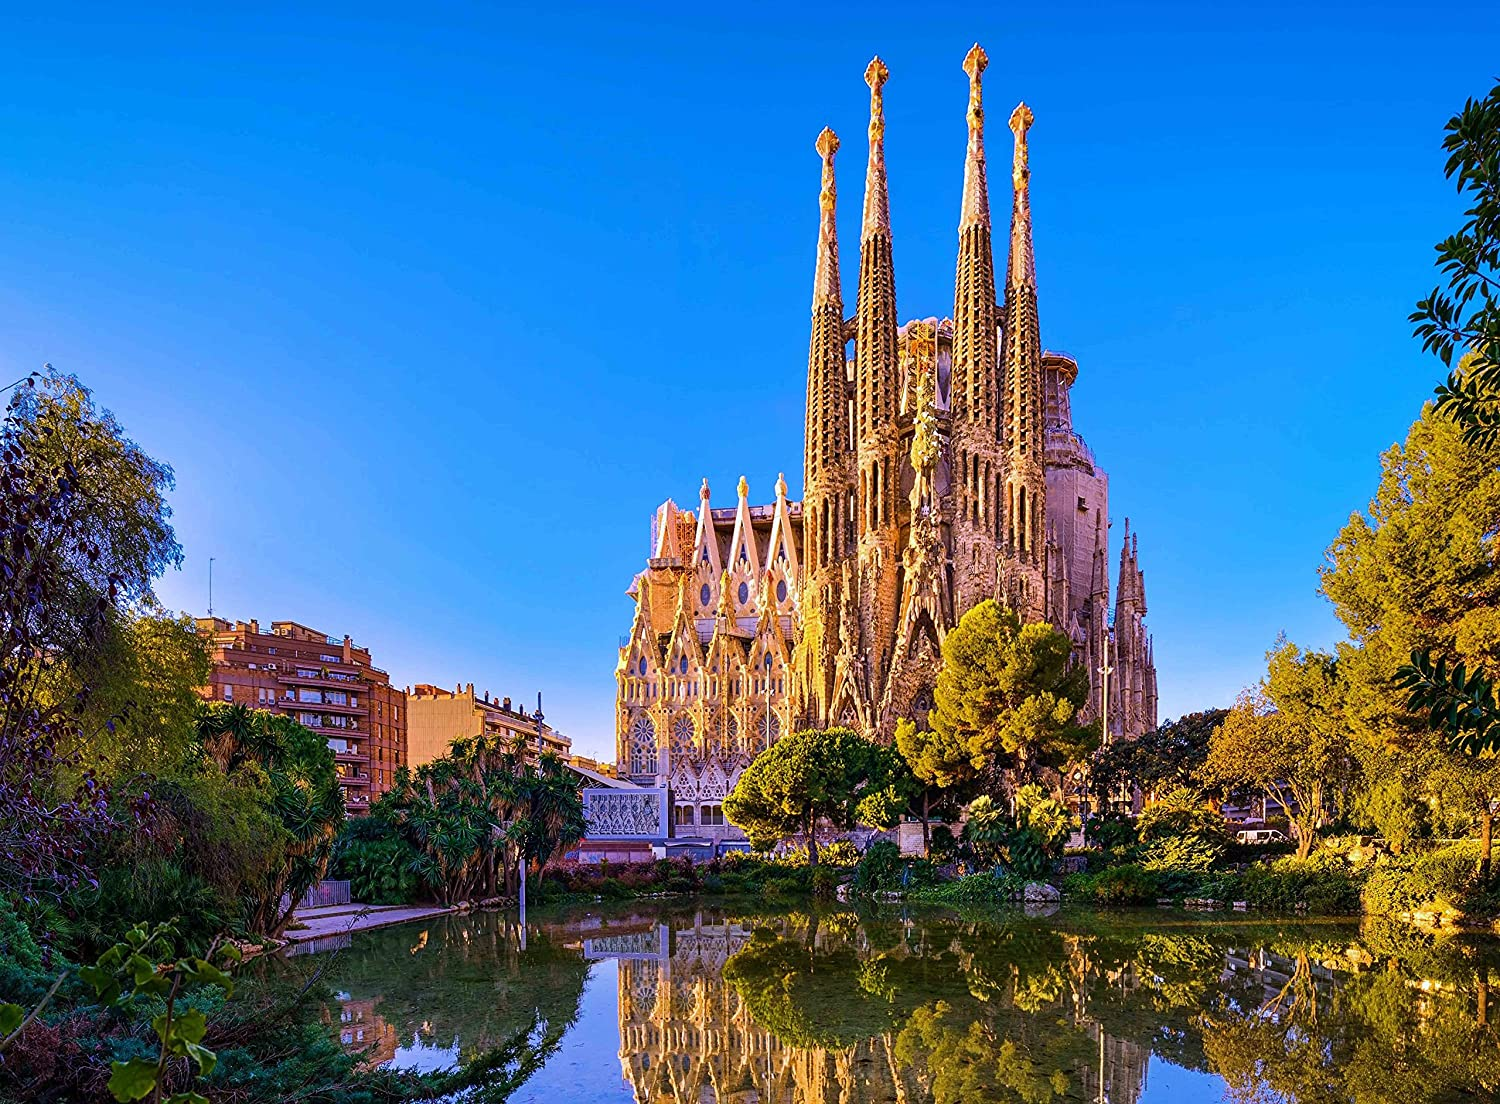 Amazon Com Fkg Adult Jigsaw Puzzle La Sagrada Familia Church Antoni Gaudi Barcelona Spain 500 Pieces Toys Games